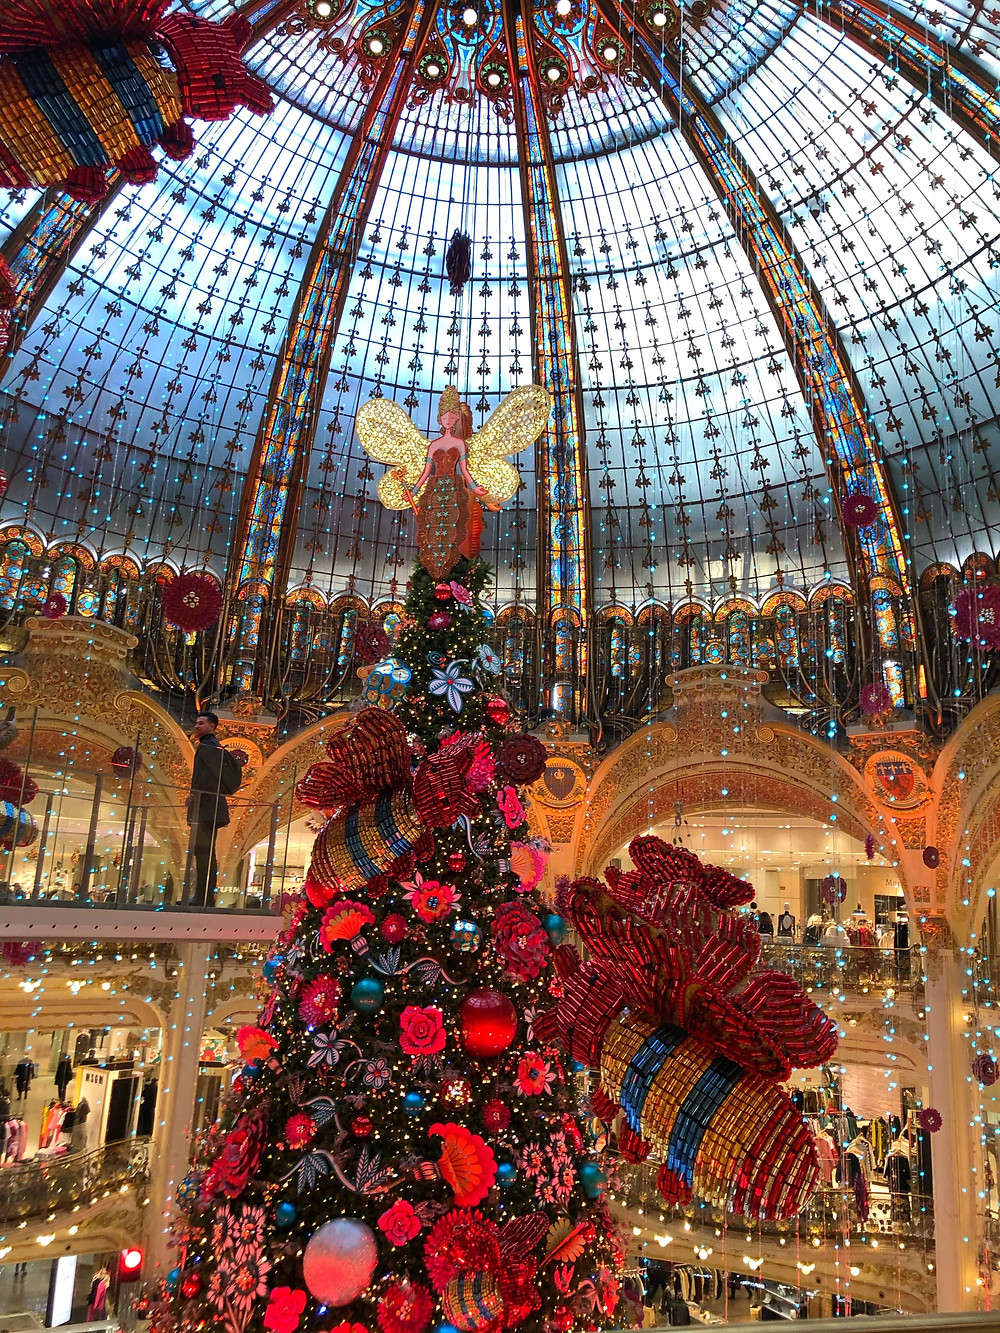 Galleries Lafayette 2019 Christmas display